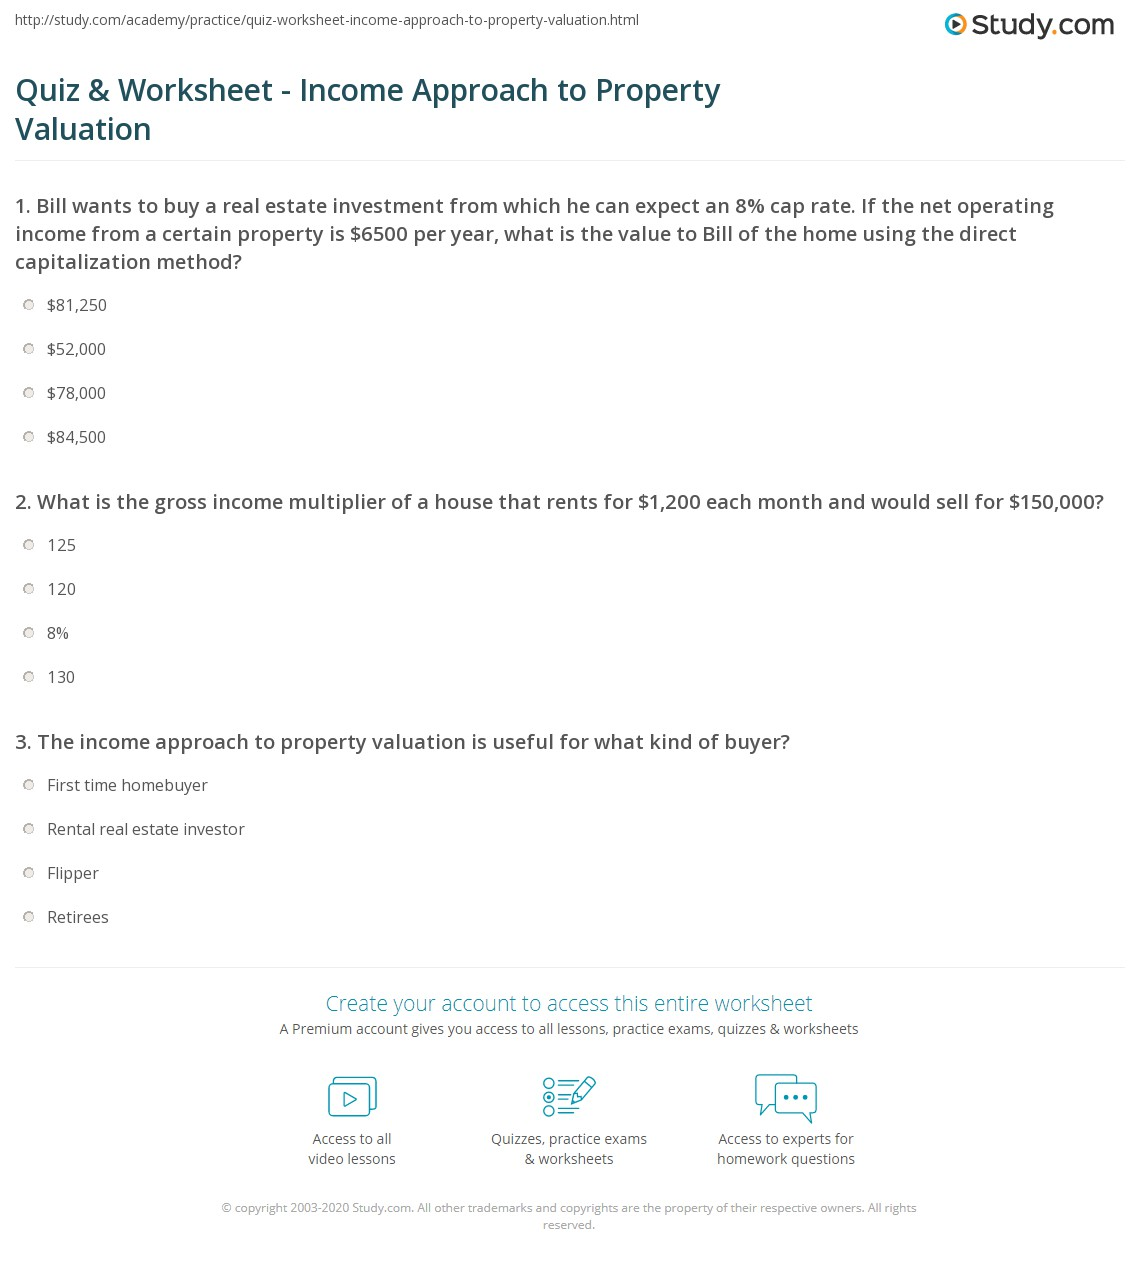 print the income approach to property valuation worksheet